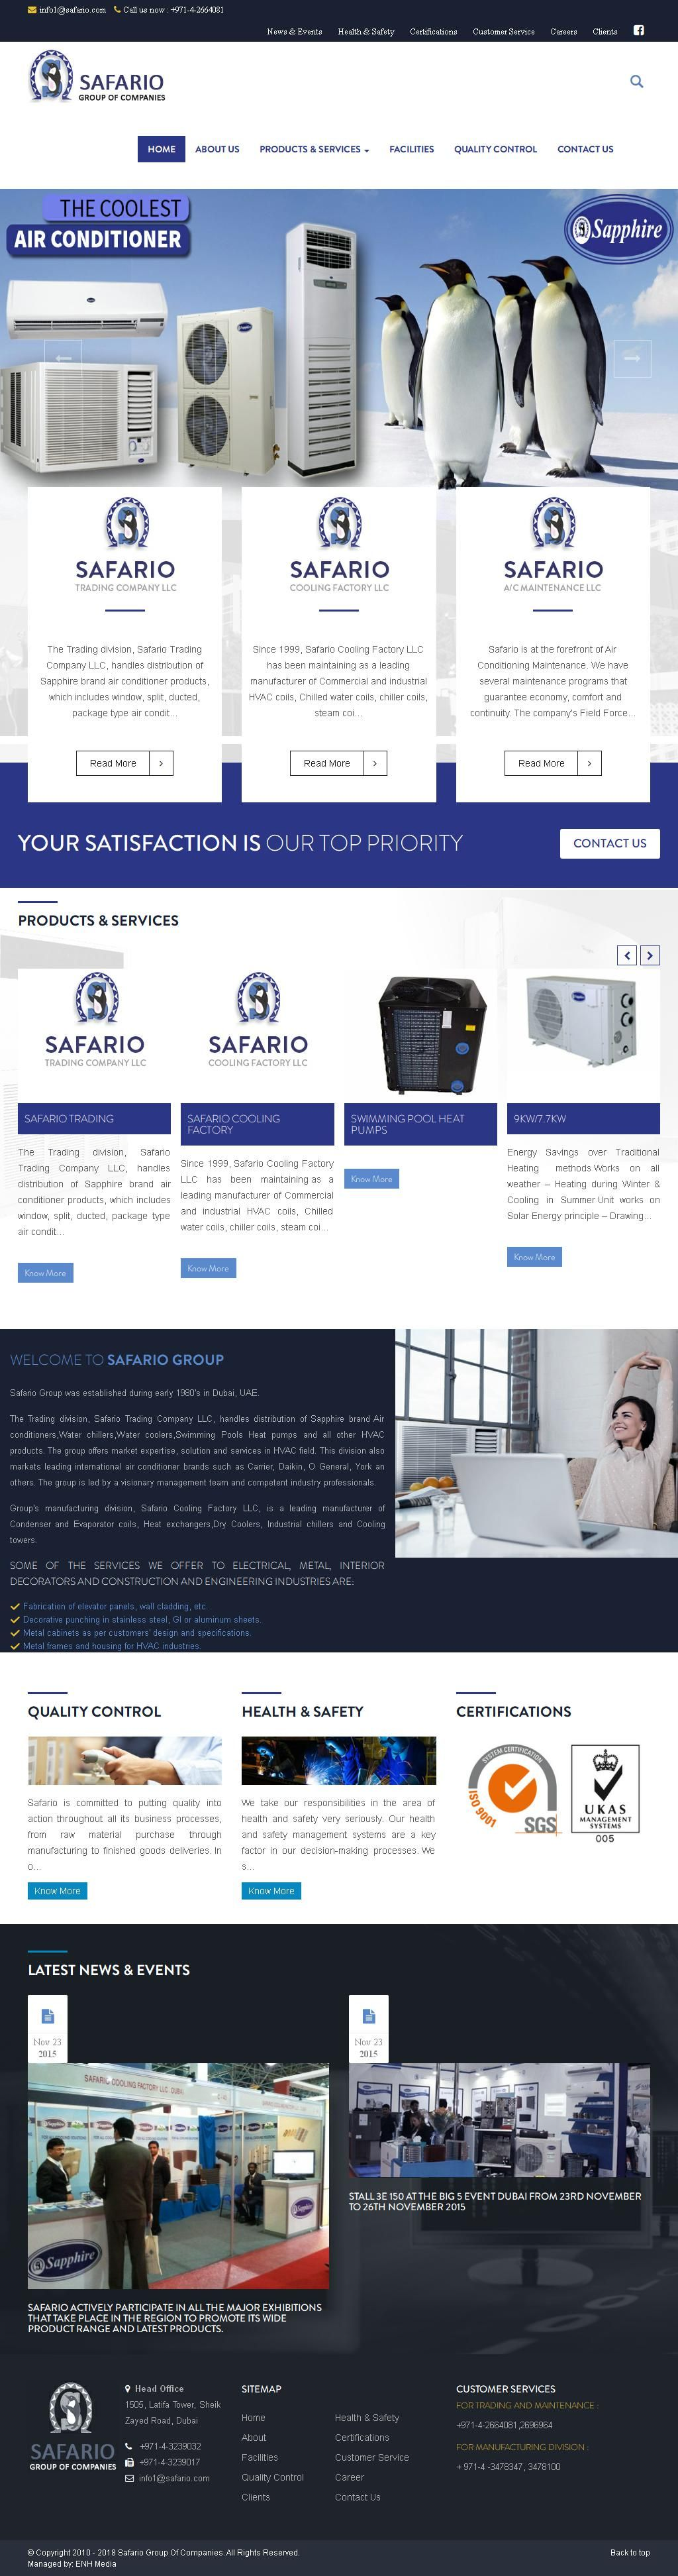 Safario Airconditioning Air Conditioning Equipment